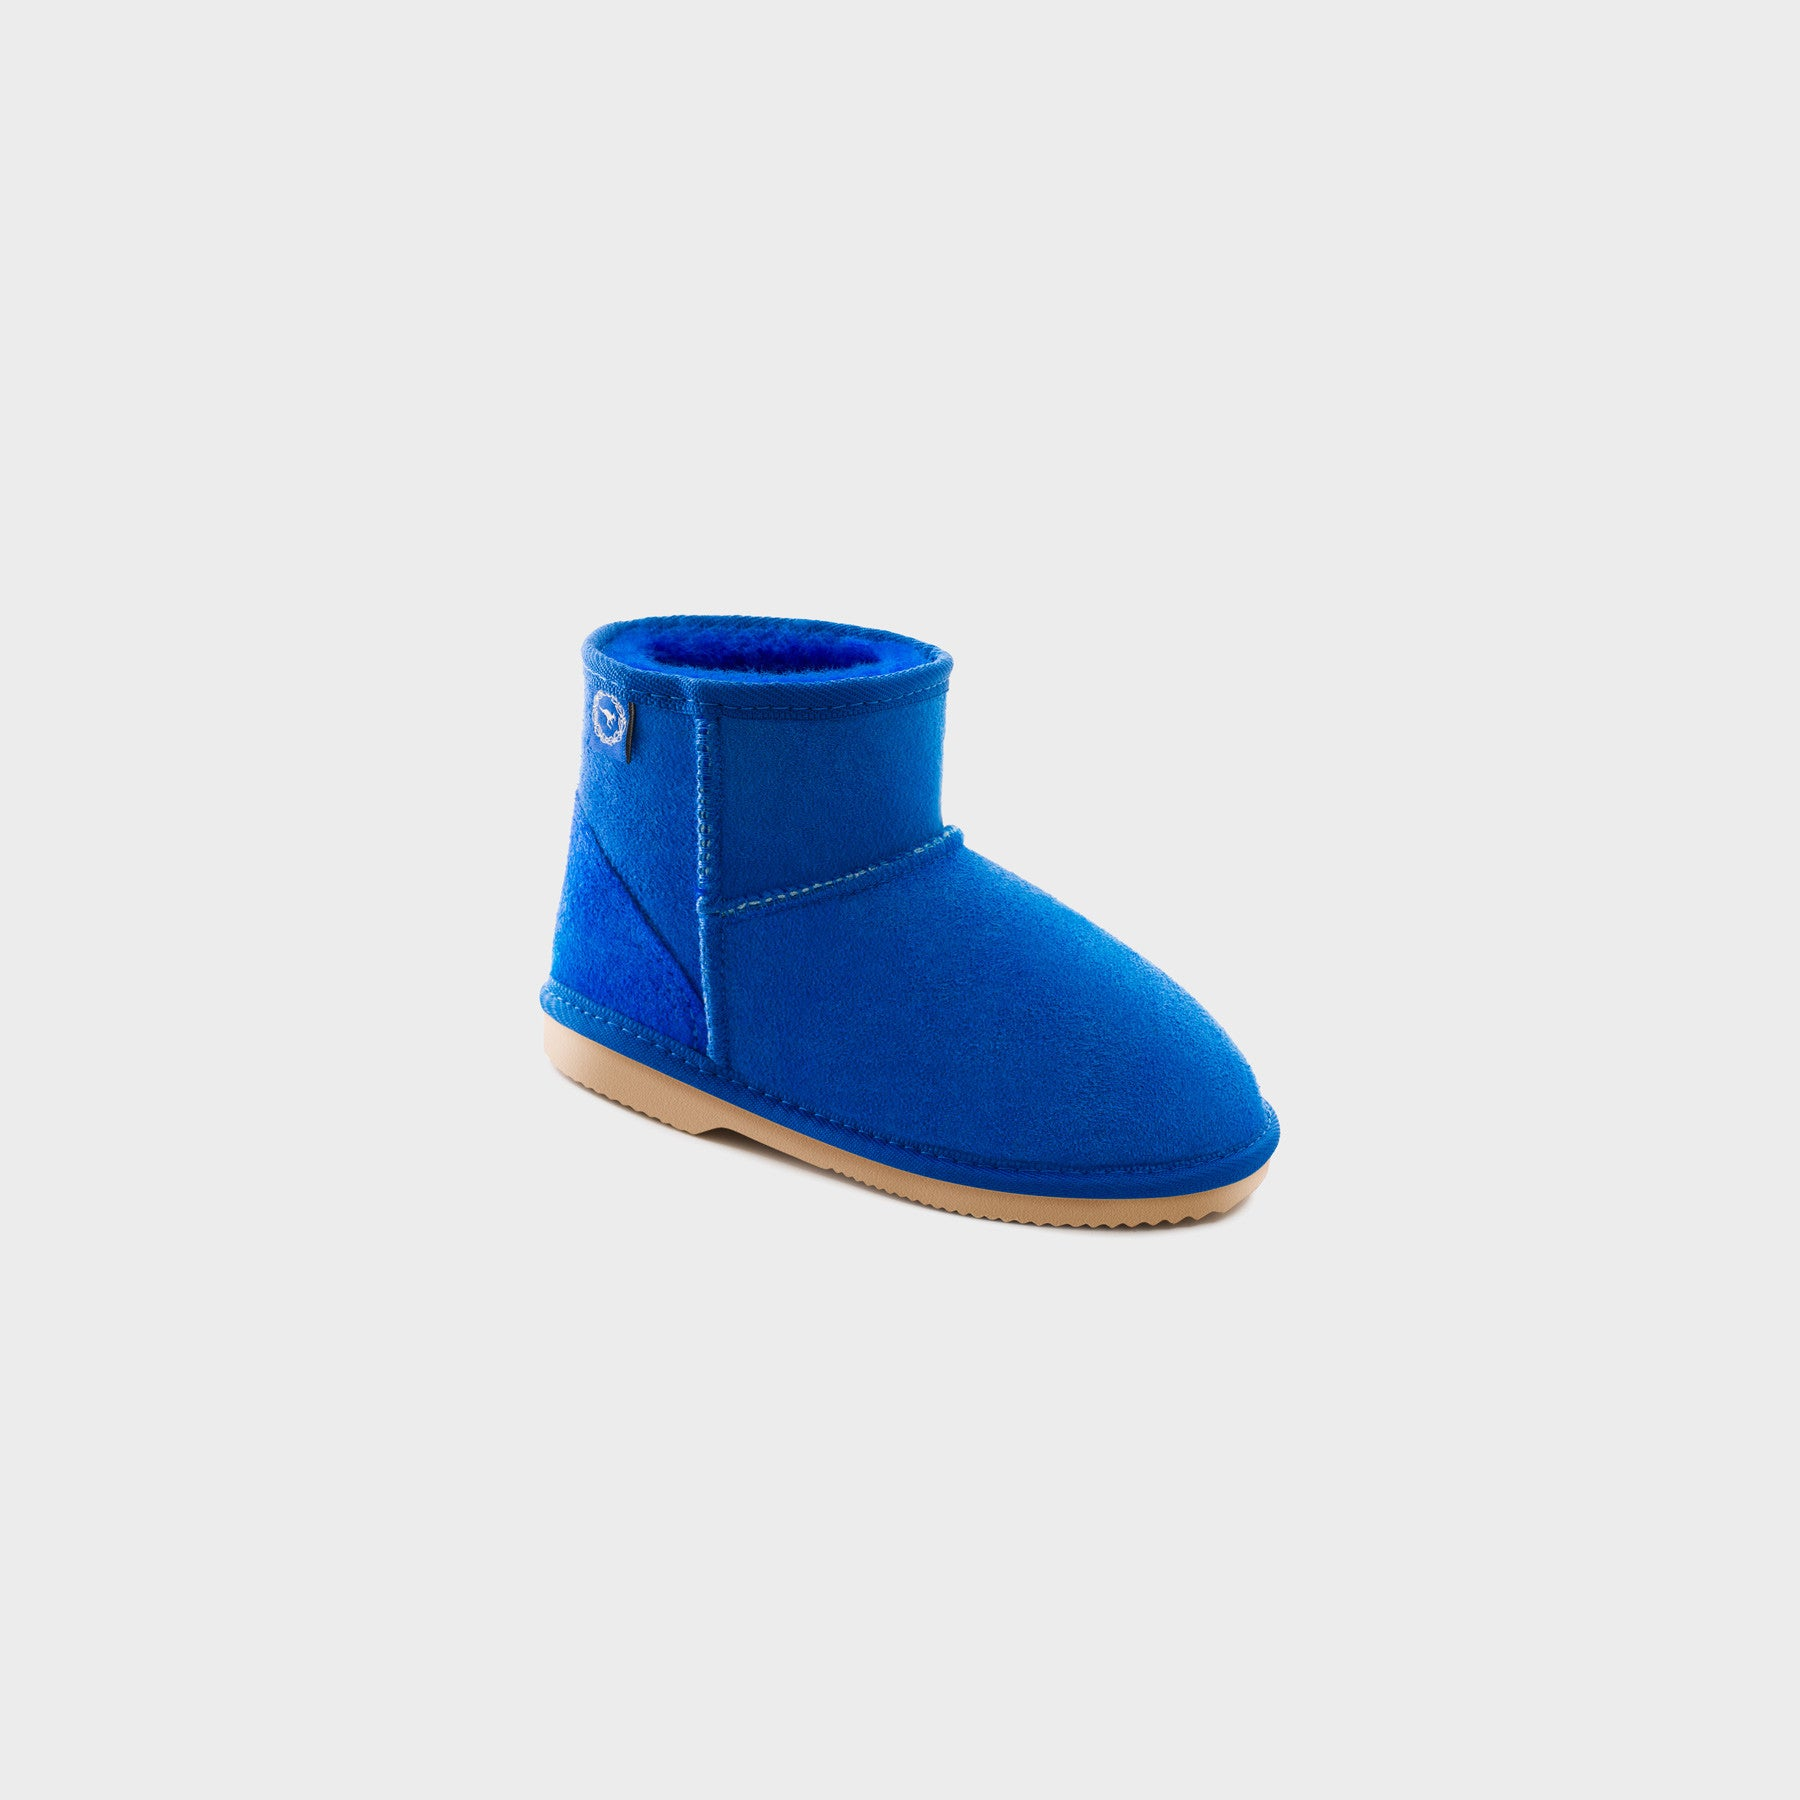 Ugg Australia Mini Ugg Boot - Cobalt Blue